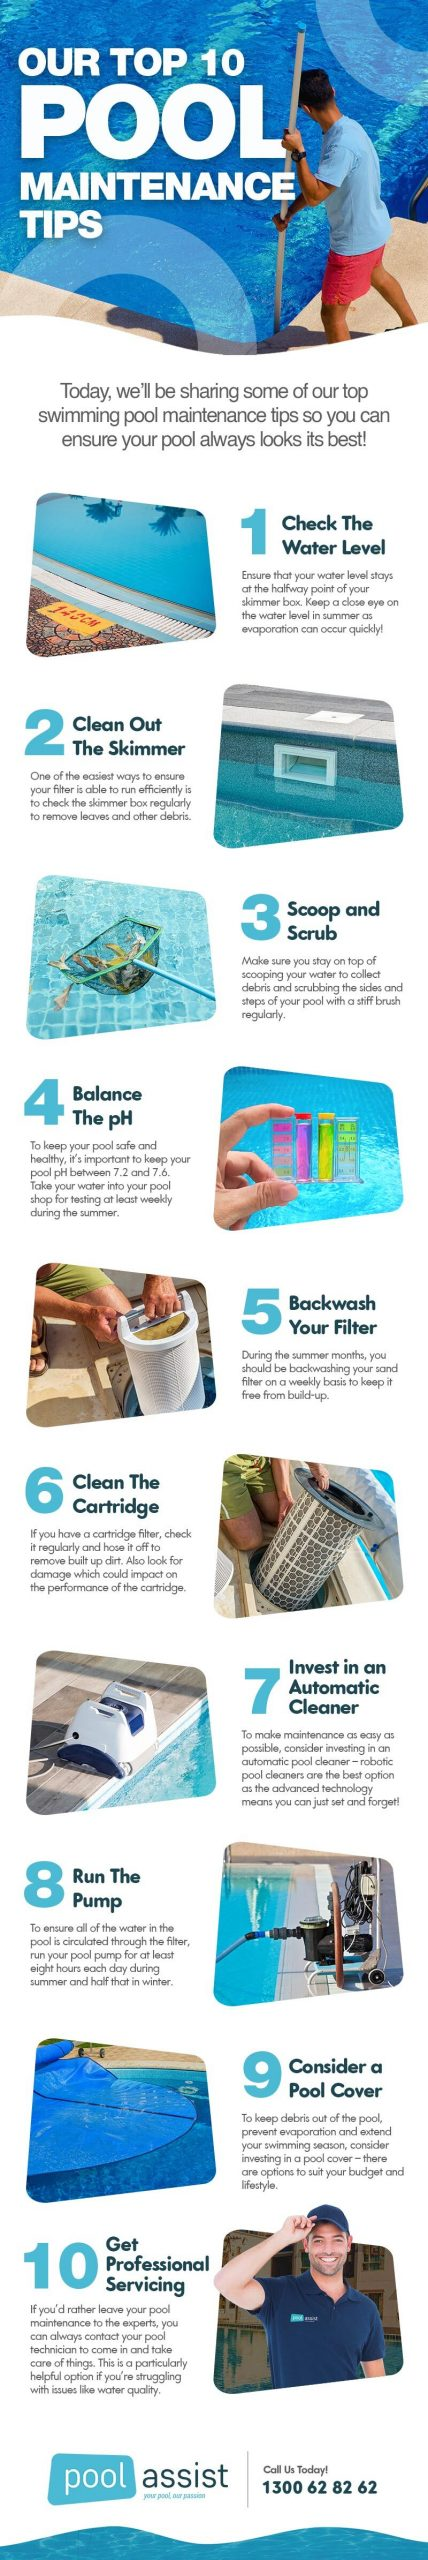 Our Top 10 Pool Maintenance Tips